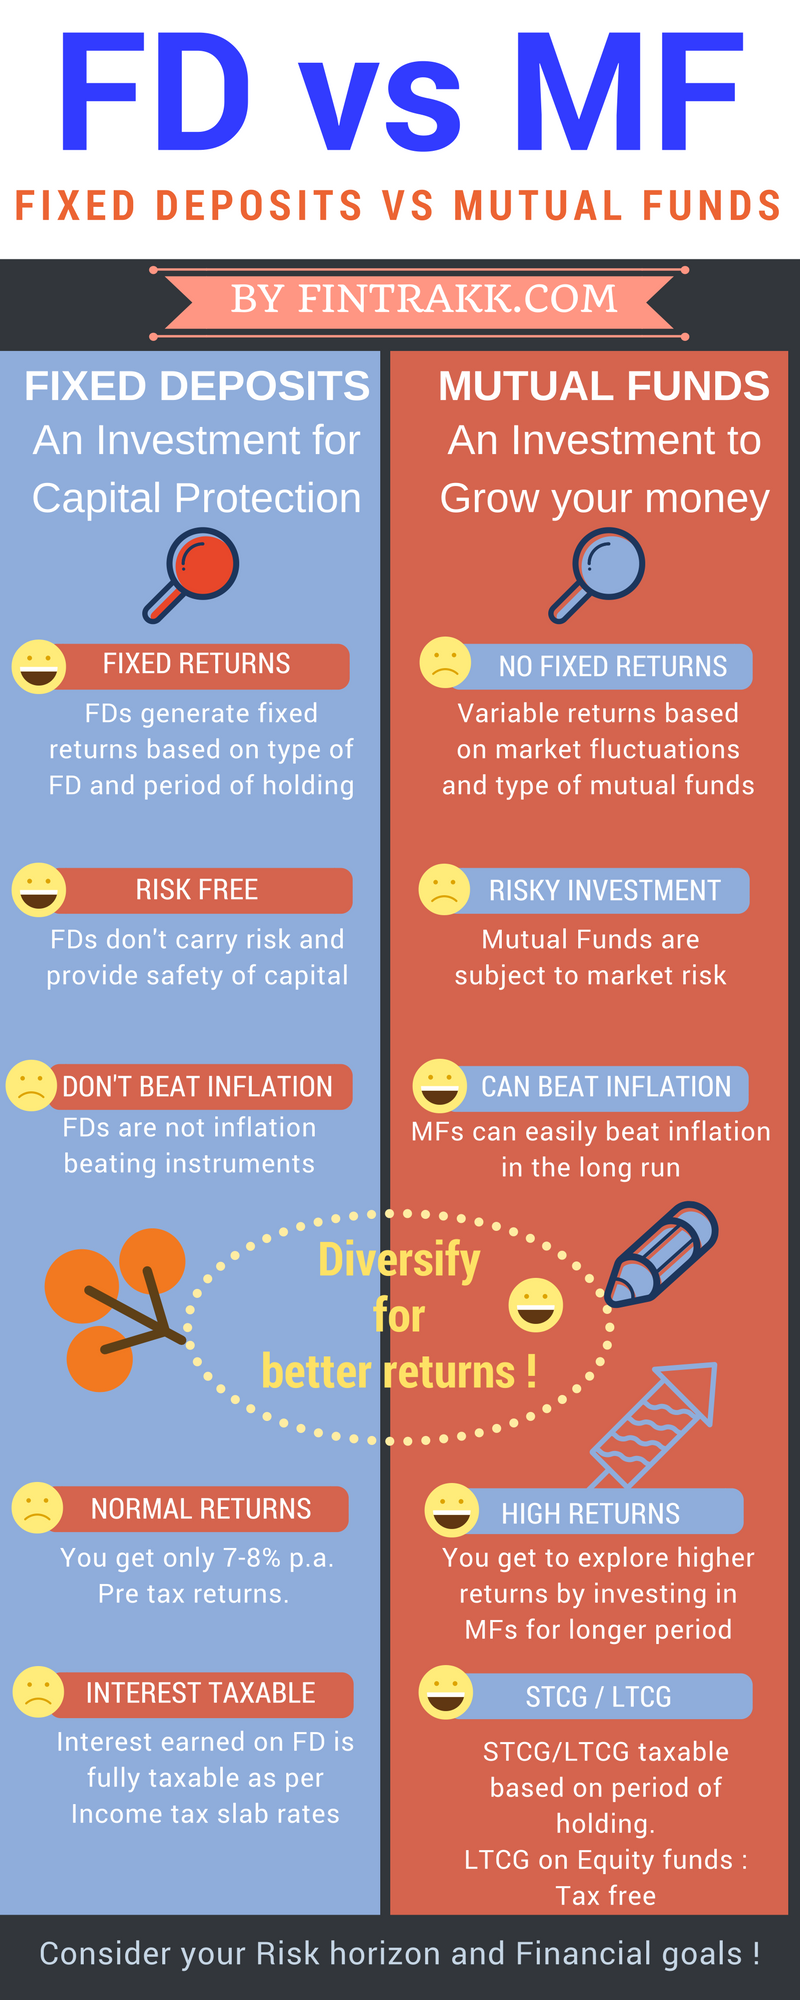 FD vs MF,FD vs mutual fund Infographic,Mutual fund infographic,FD or mutual funds